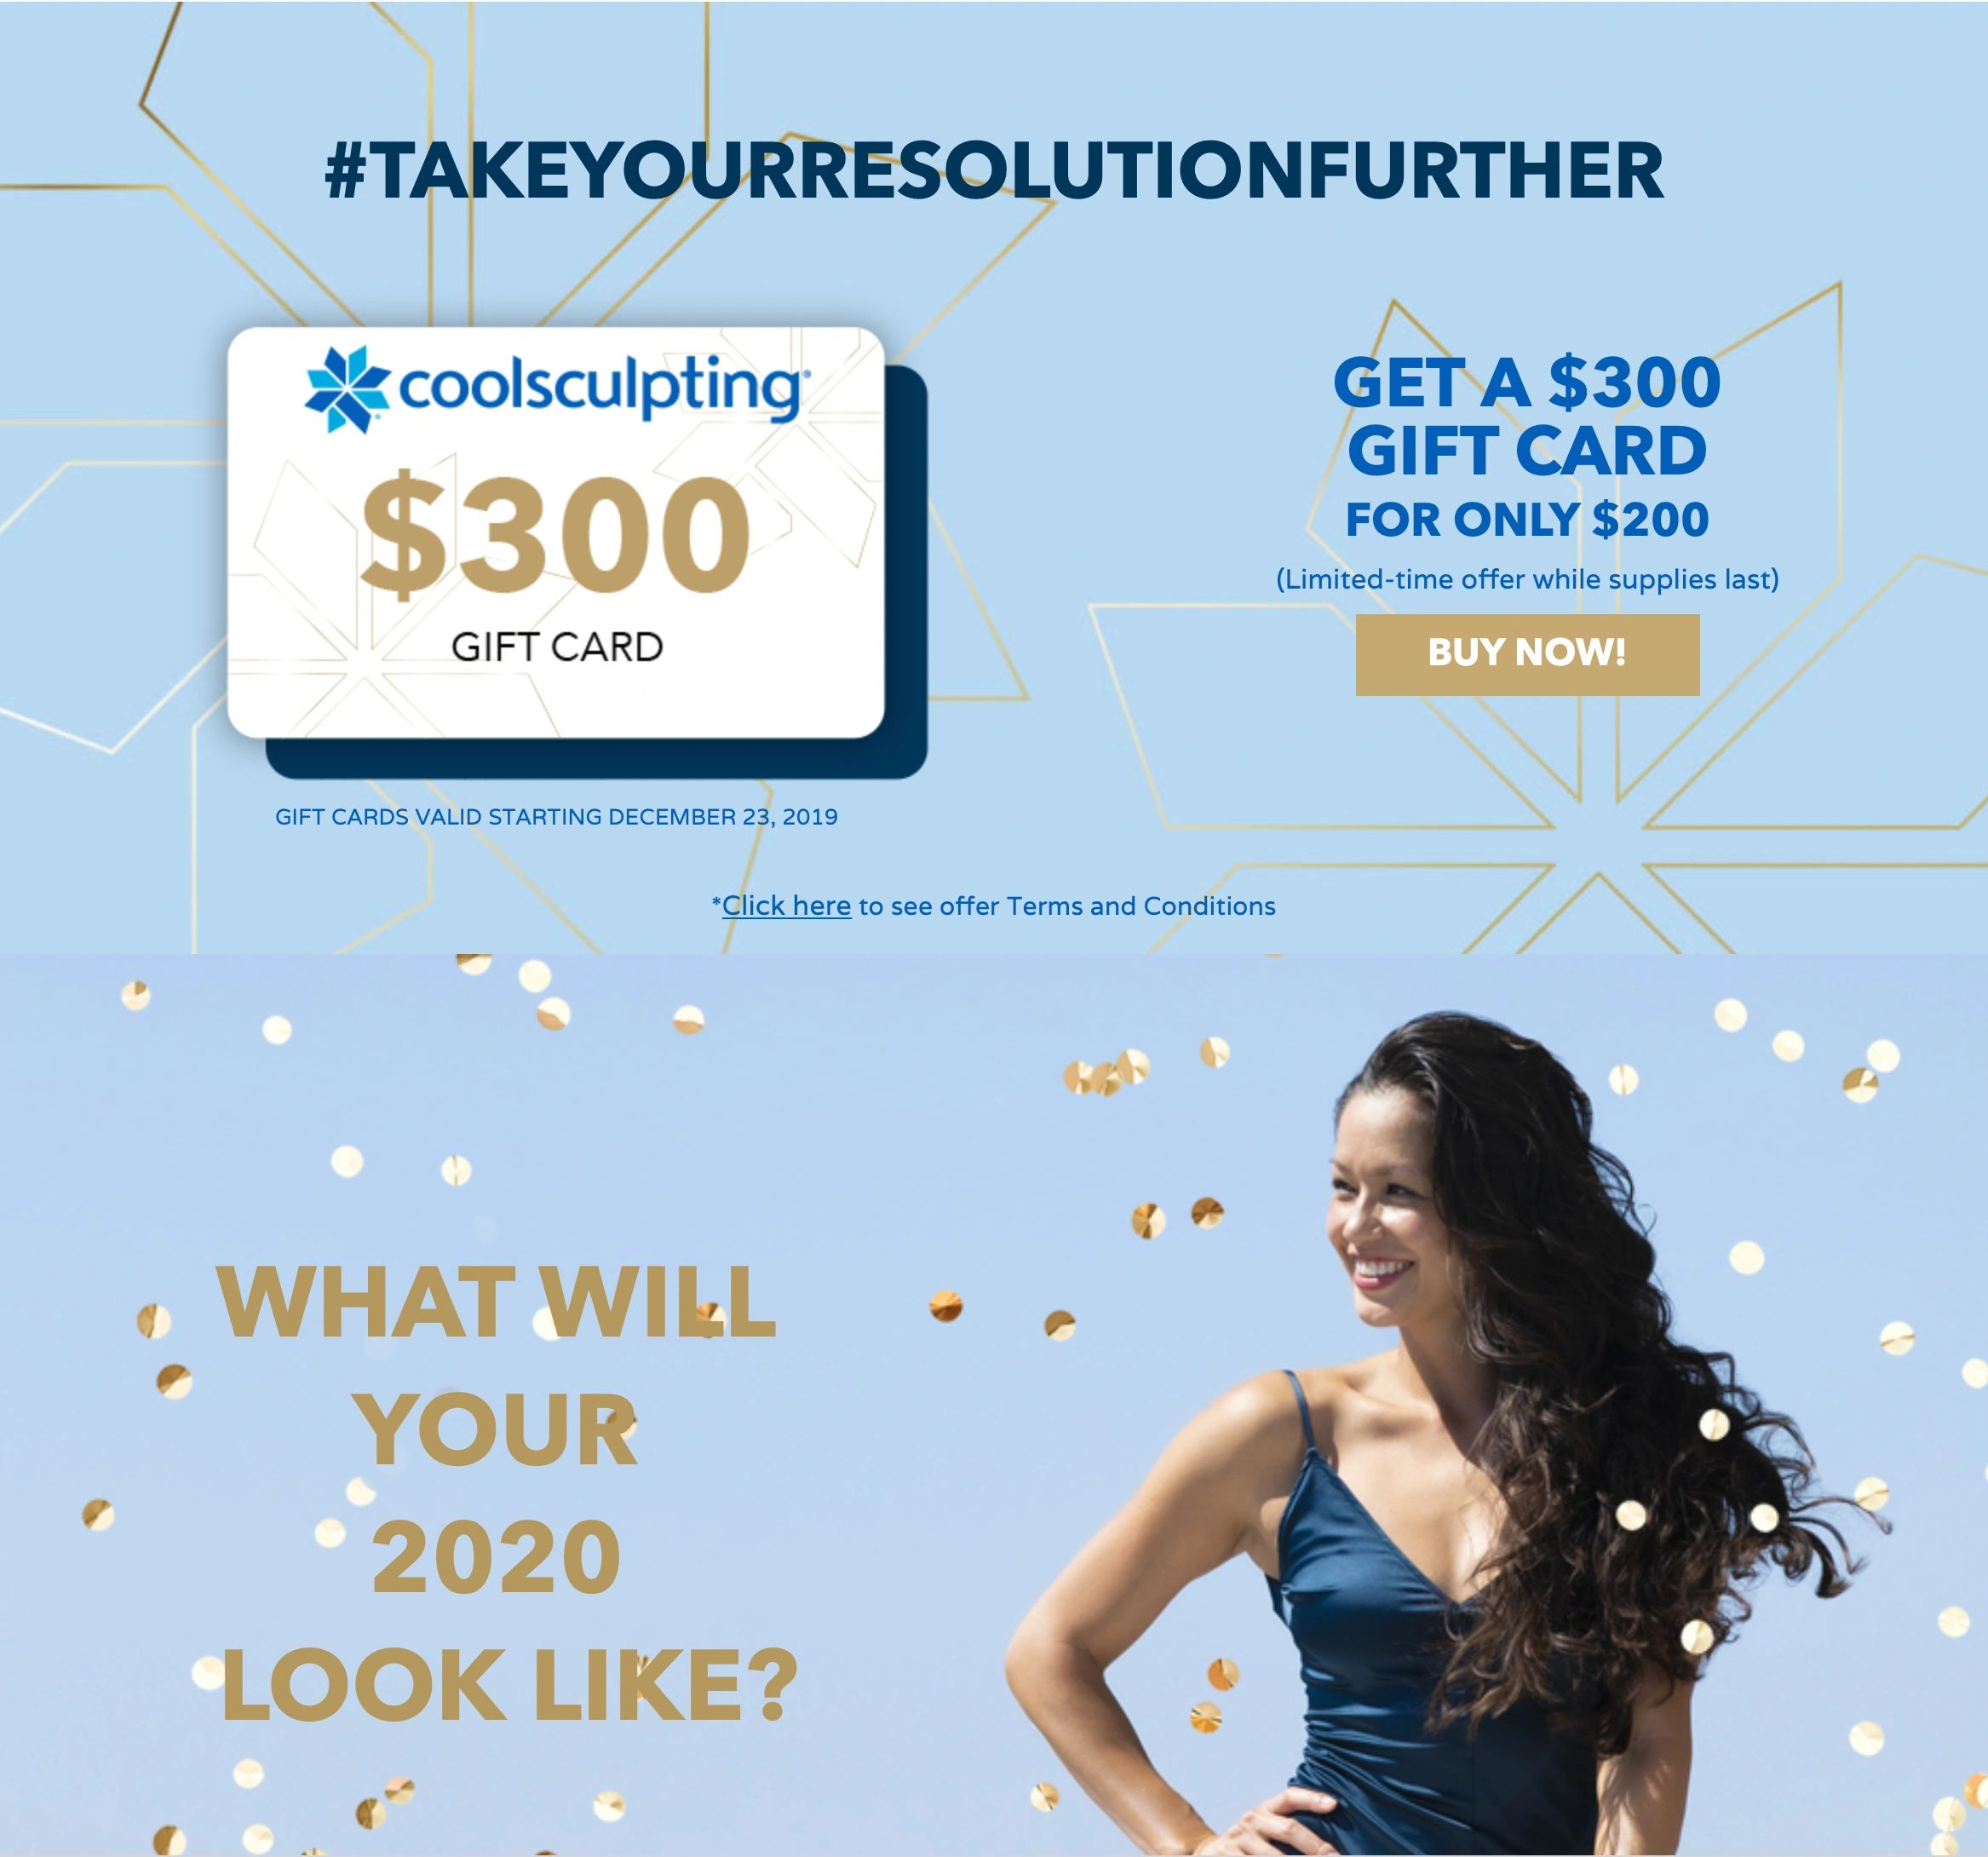 Coolsculpting Promotion. Take Your Resolution Further. Get a $300 Gift Card for only $200.